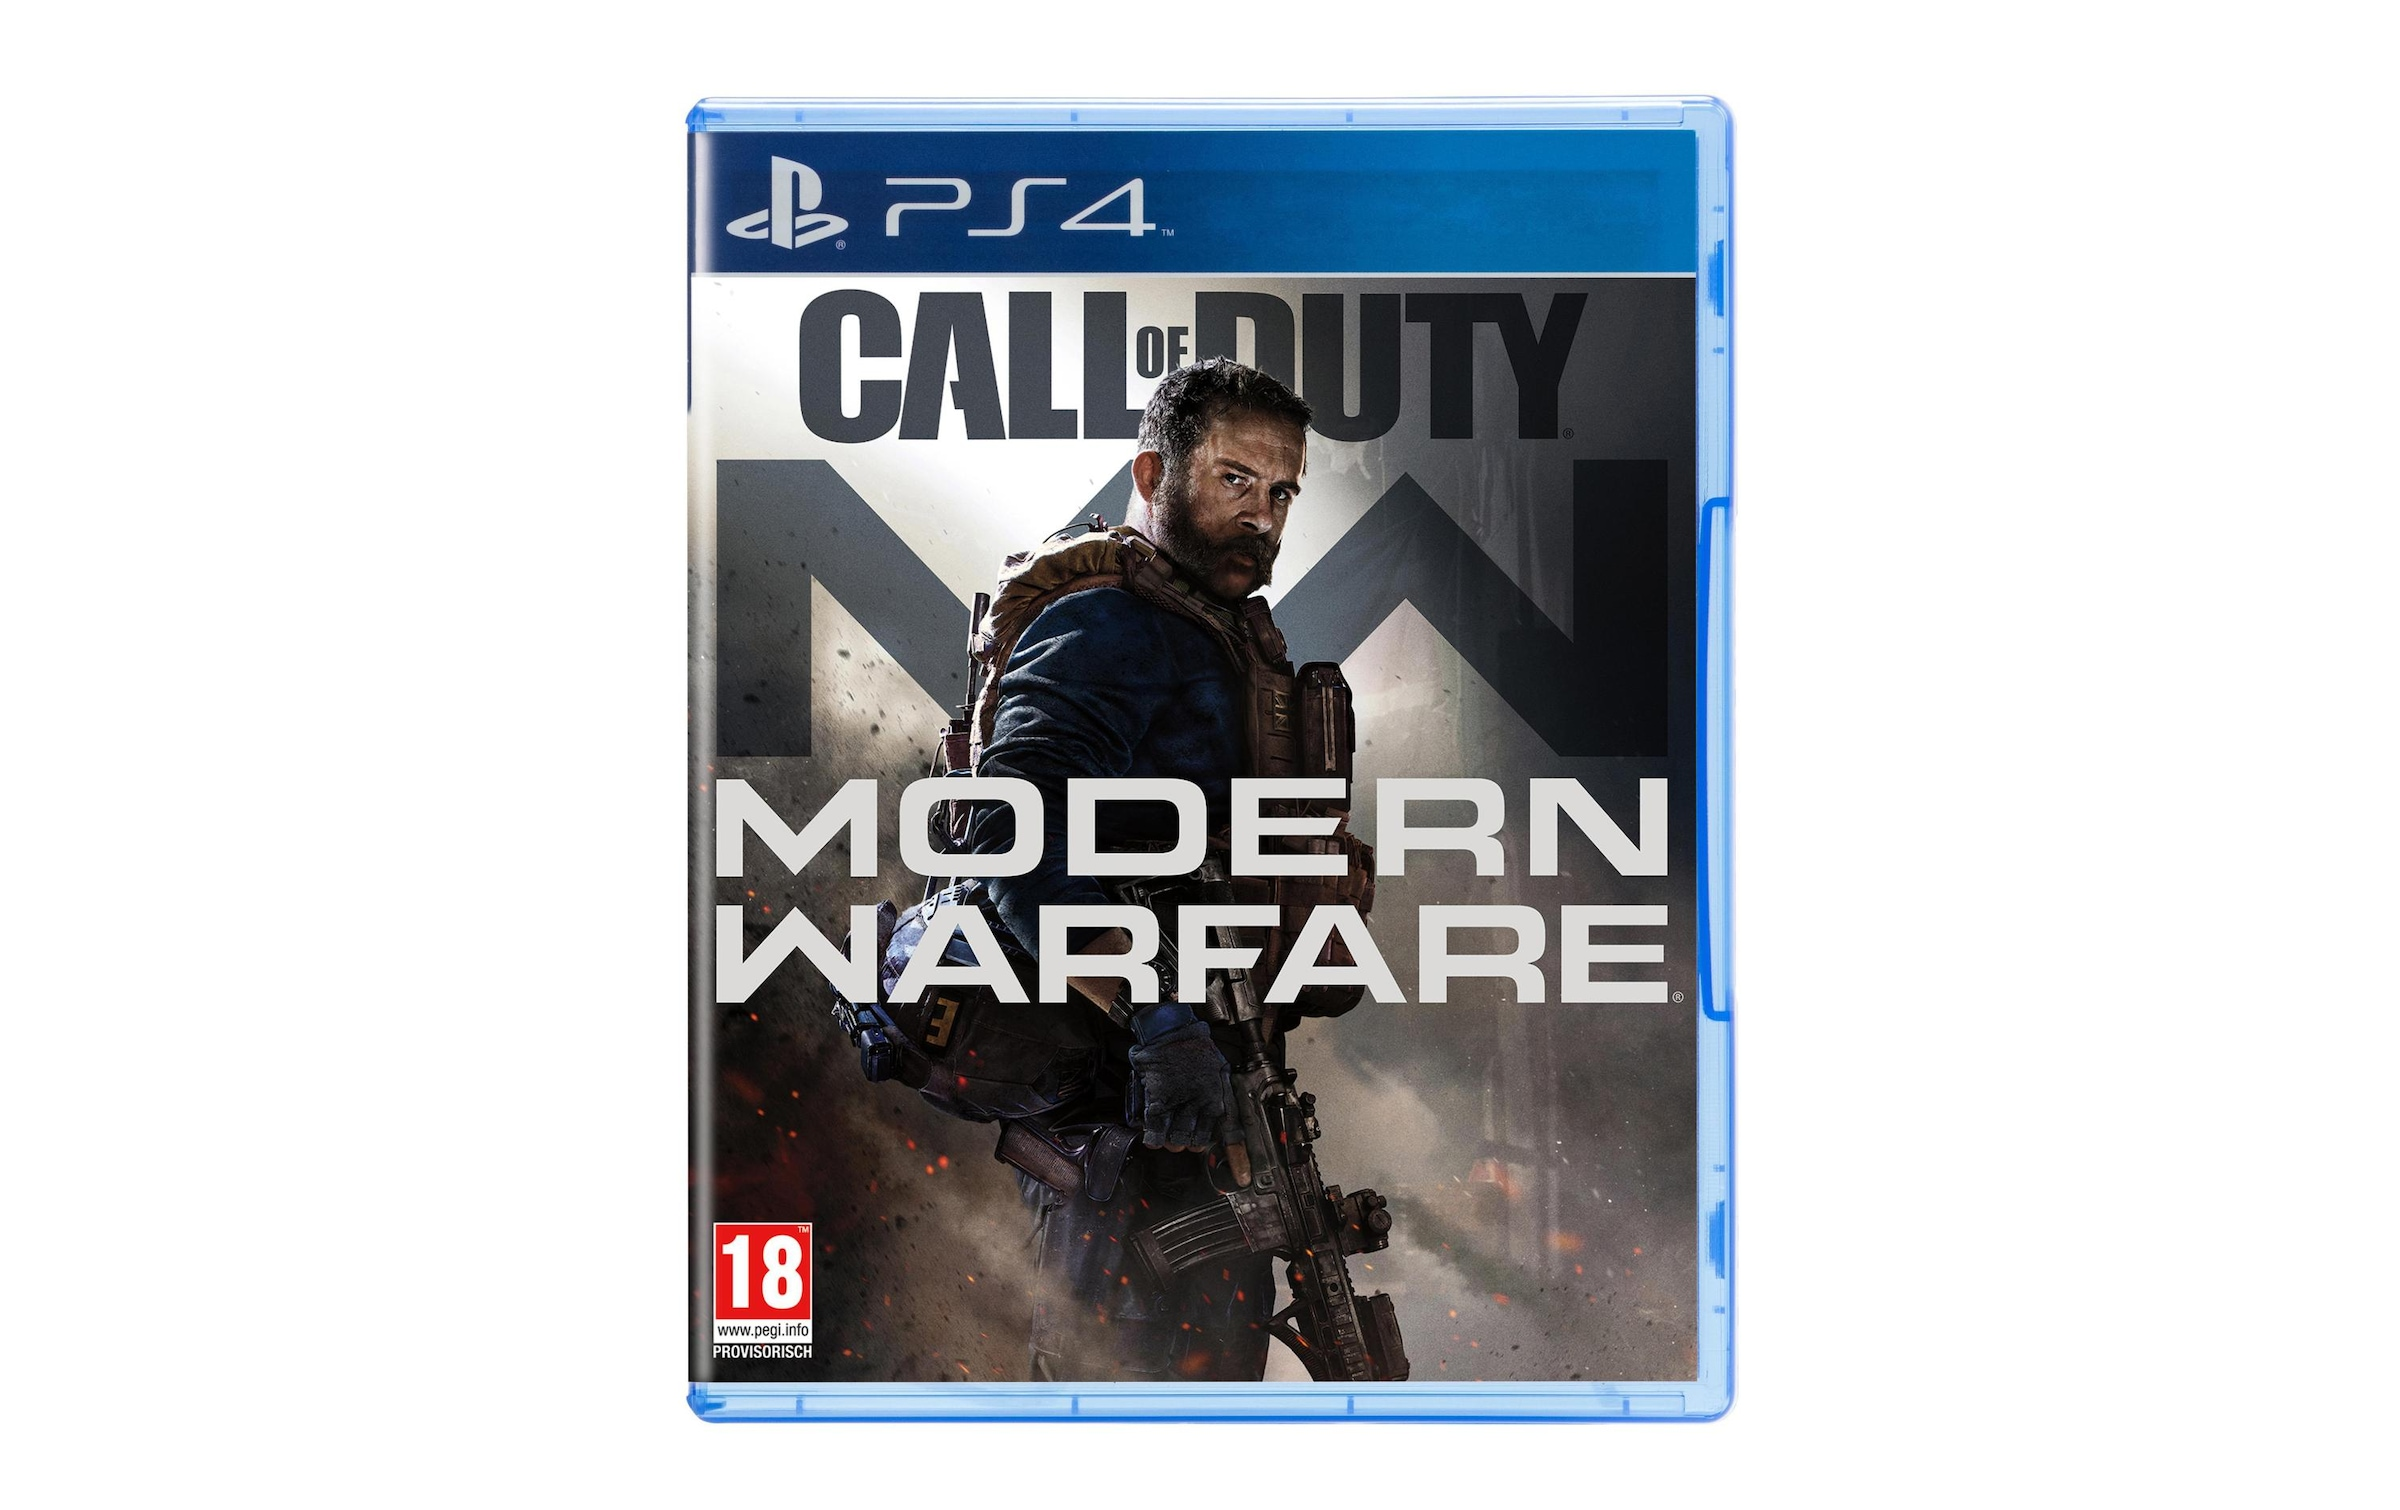 Image of Blizzard Call of Duty: Modern Warfare, Activision